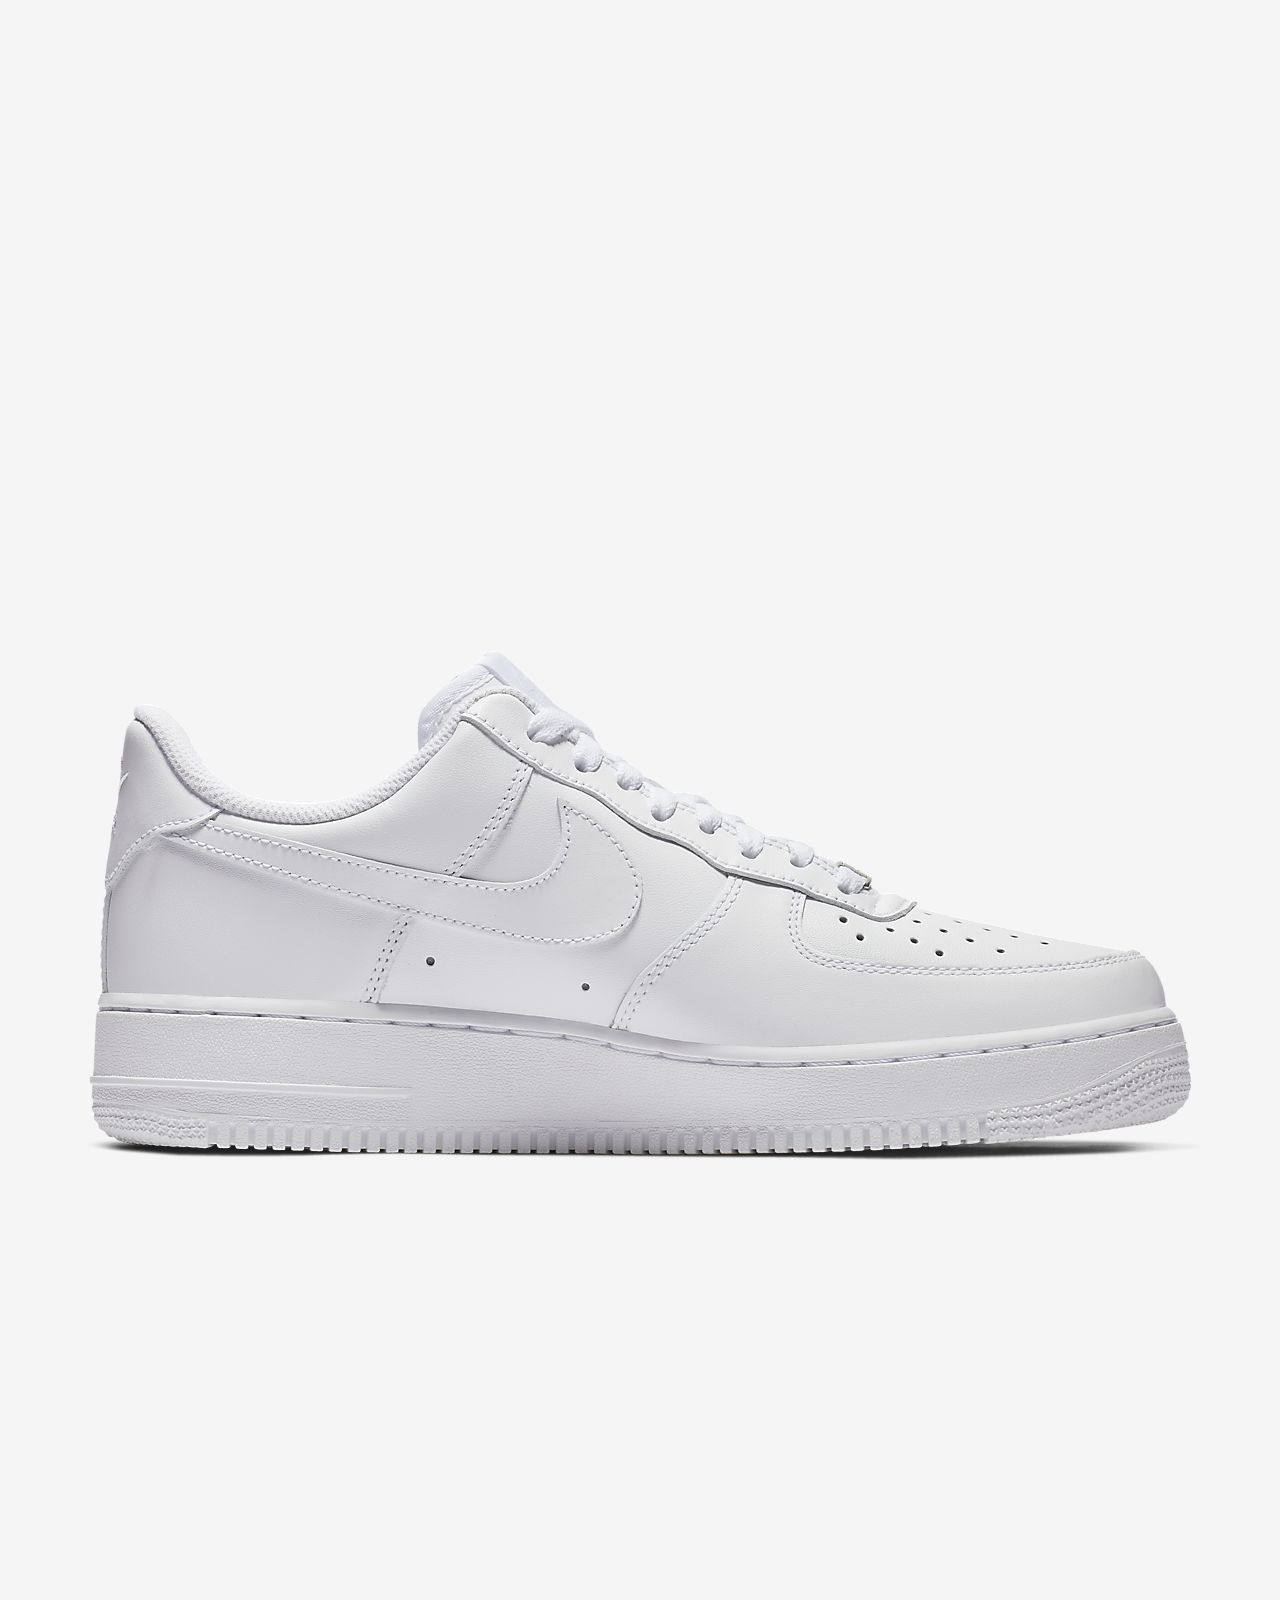 c448542850ff2 Nike Air Force 1 '07 Women's Shoe. Nike.com AT